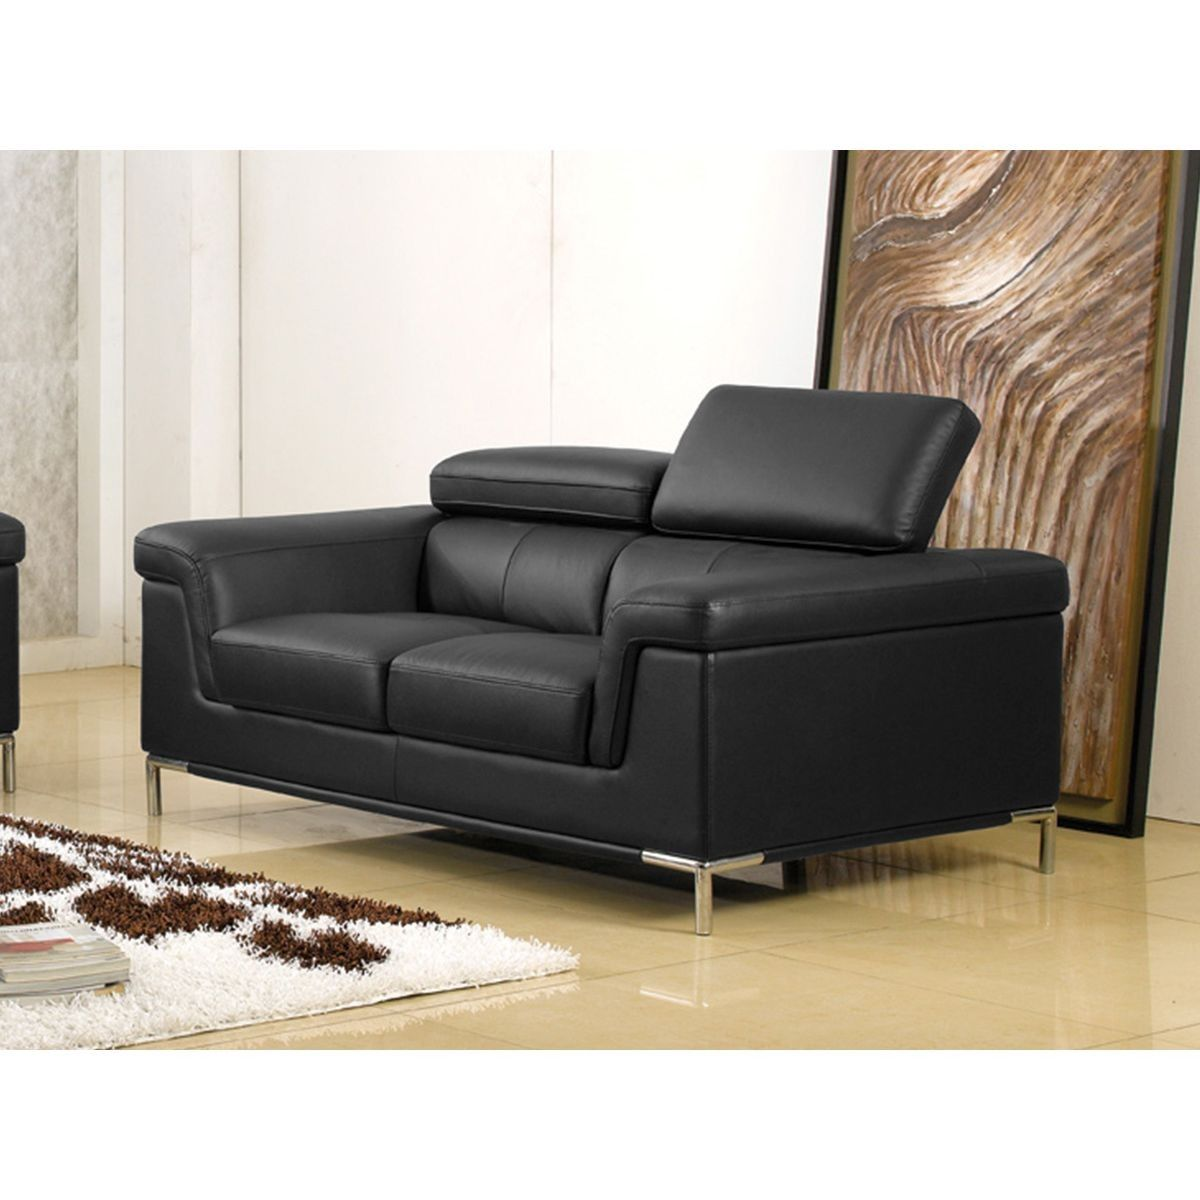 Fauteuil Cuir Rania Taille 1 Place Fauteuil Cuir Fauteuil